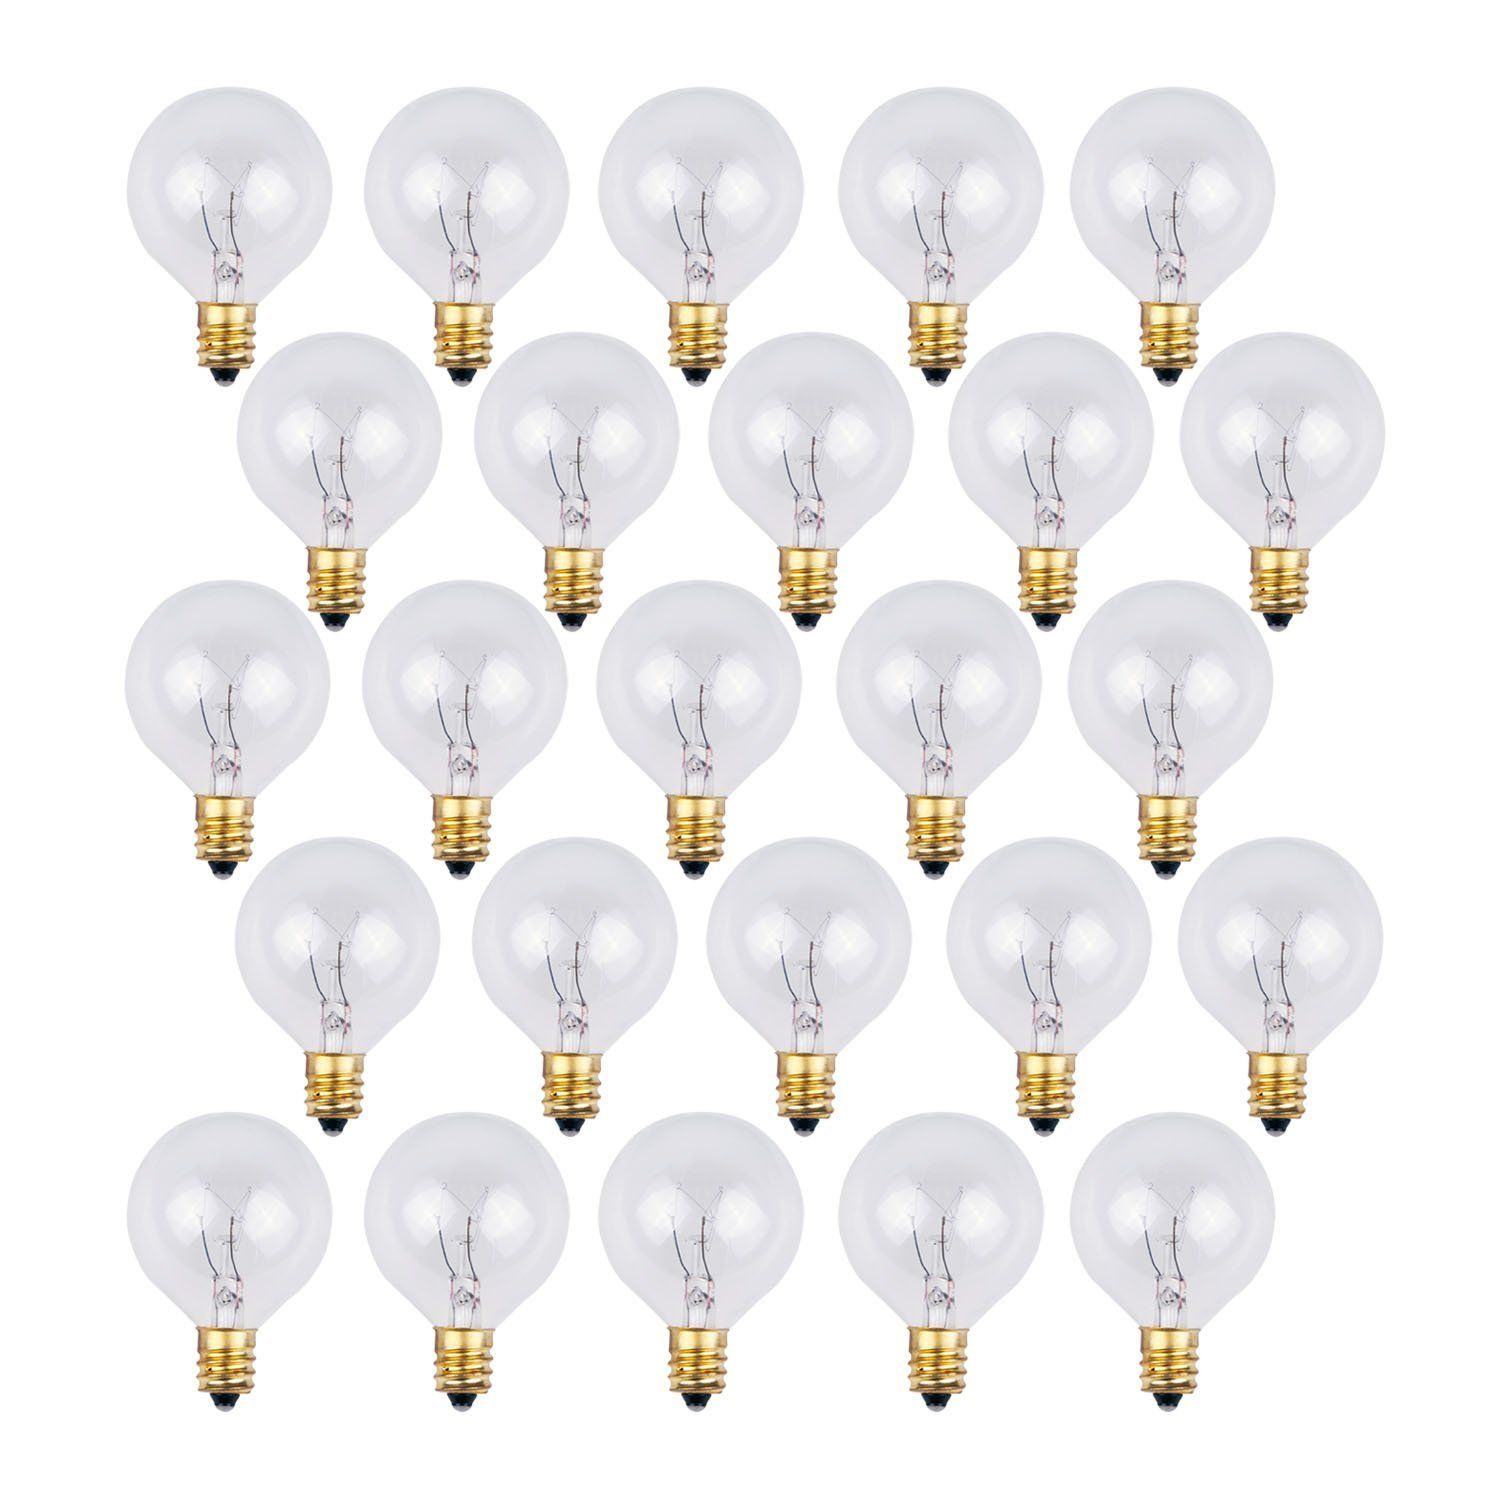 Replacement Bulbs For String Lights Endearing 25 Pack  Clear G40 Globe Light Bulbs For Patio String Lights Fits Design Decoration